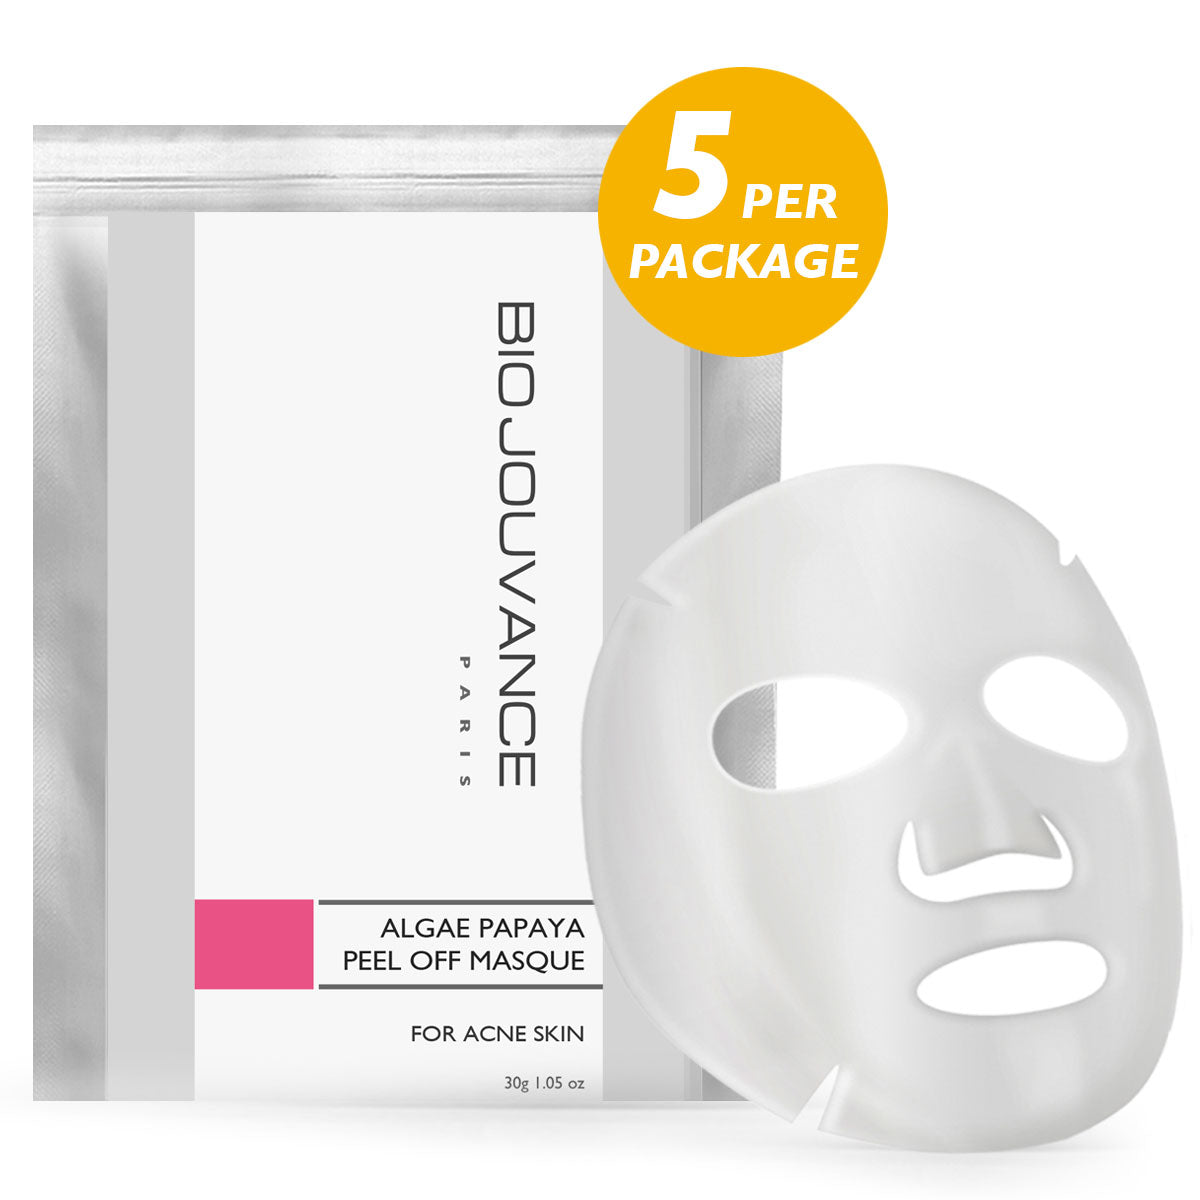 Papaya Peel-Off Masque 5/PKG (Professional)